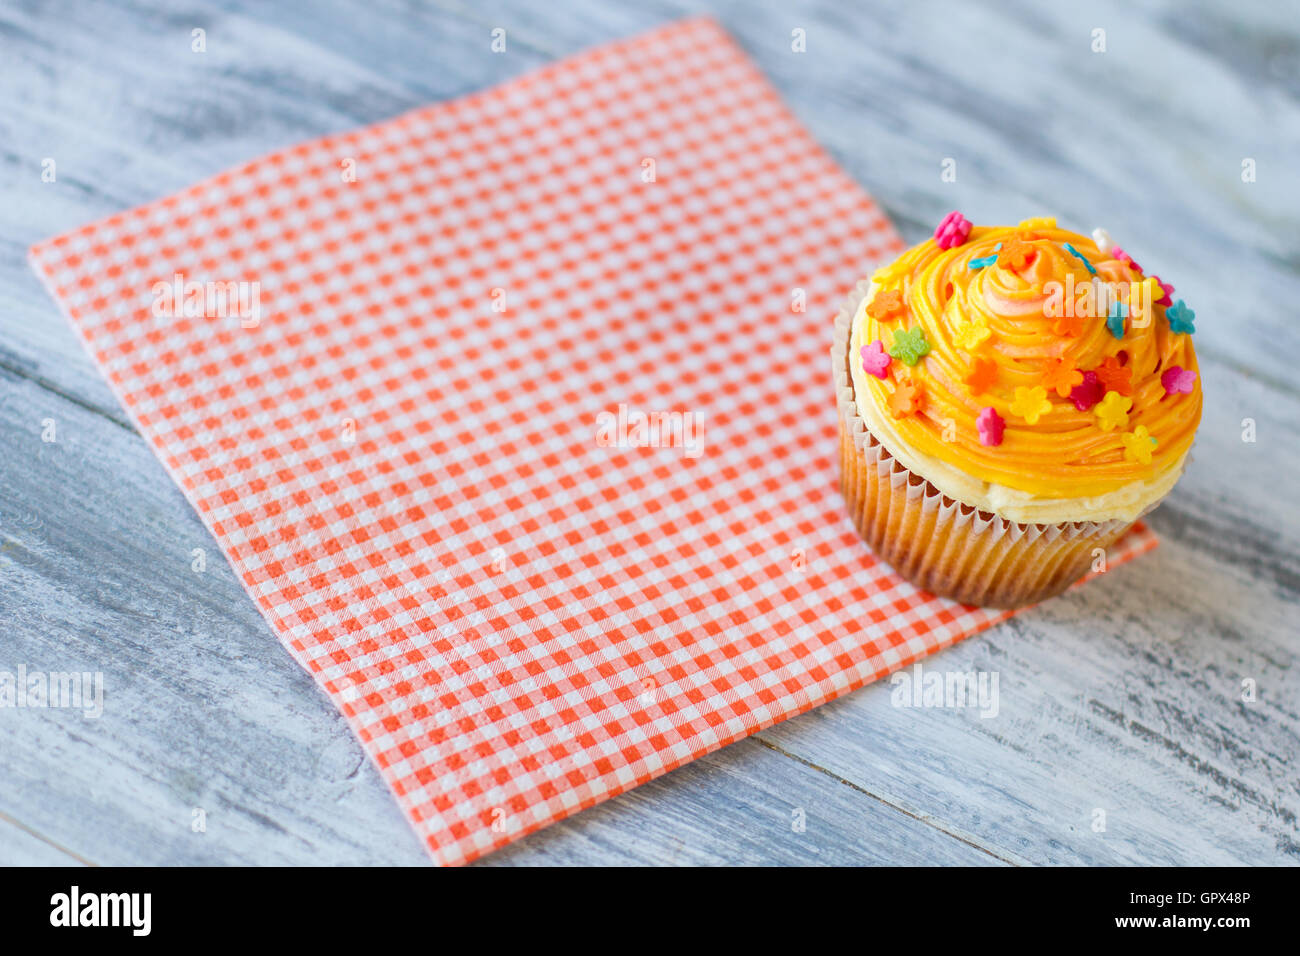 Cupcake on red checkered napkin. - Stock Image